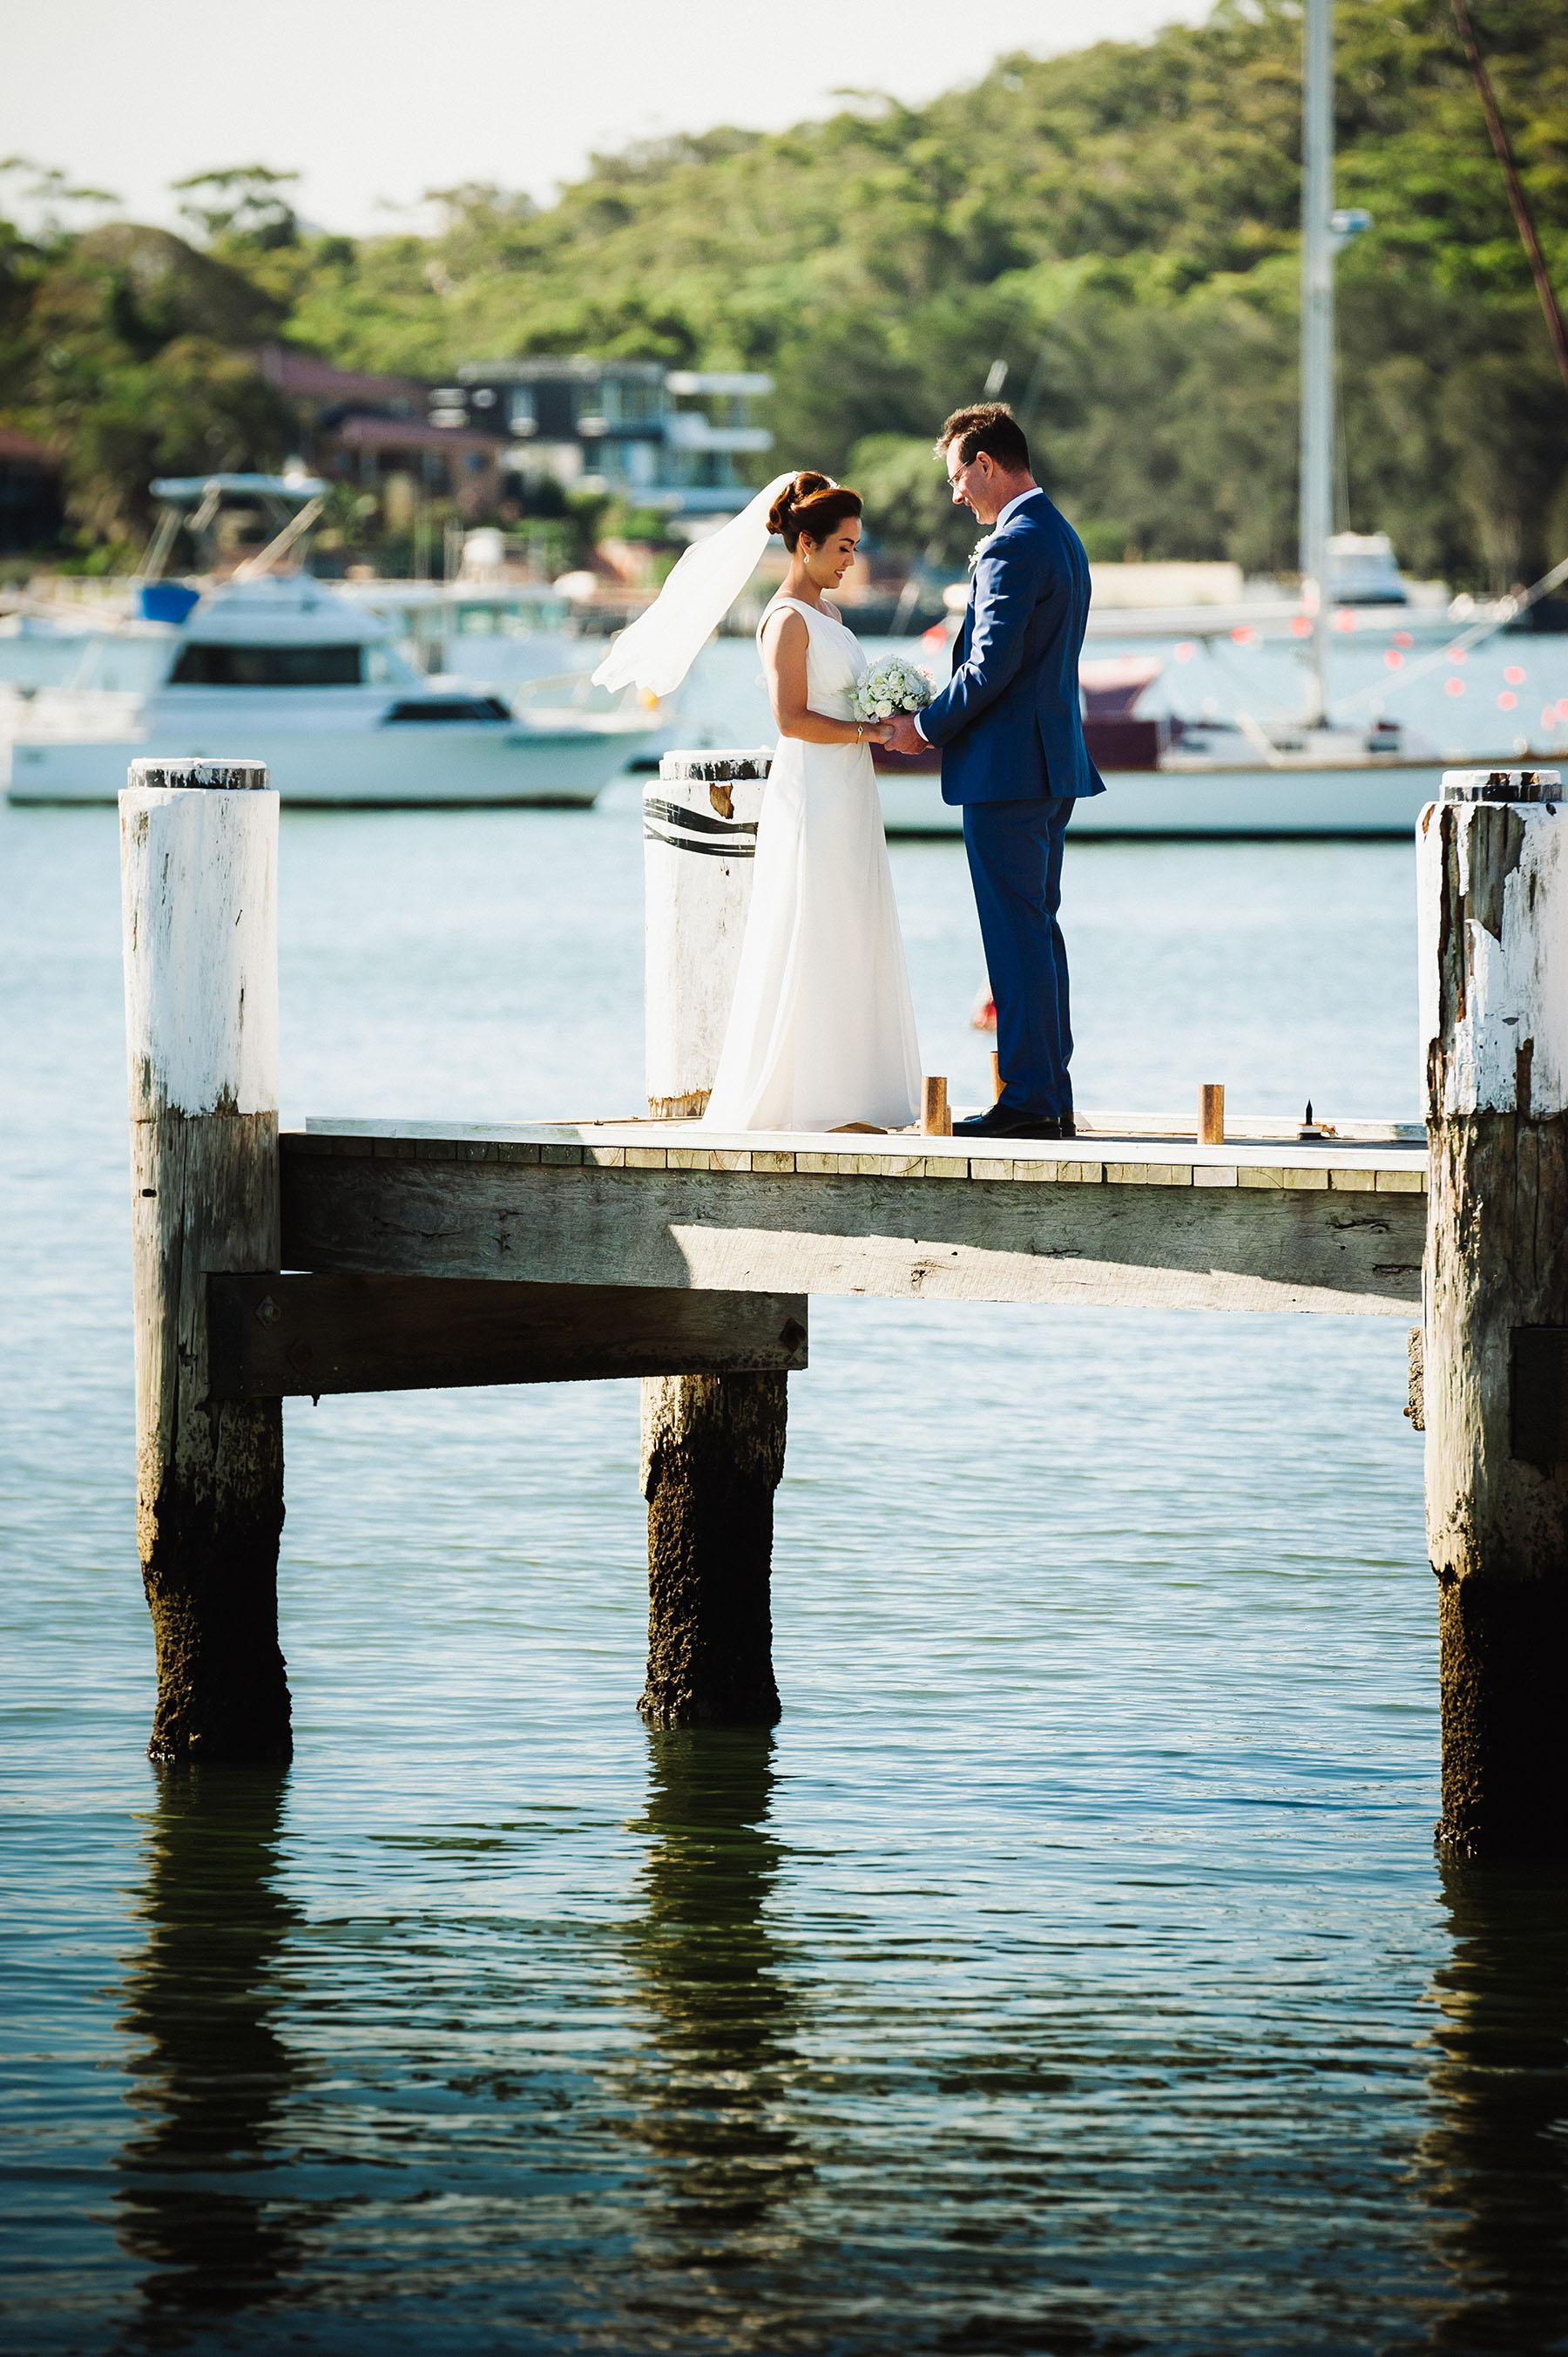 Marryme_wedding_photography_dorrigo_bellingen_photographer_30.jpg